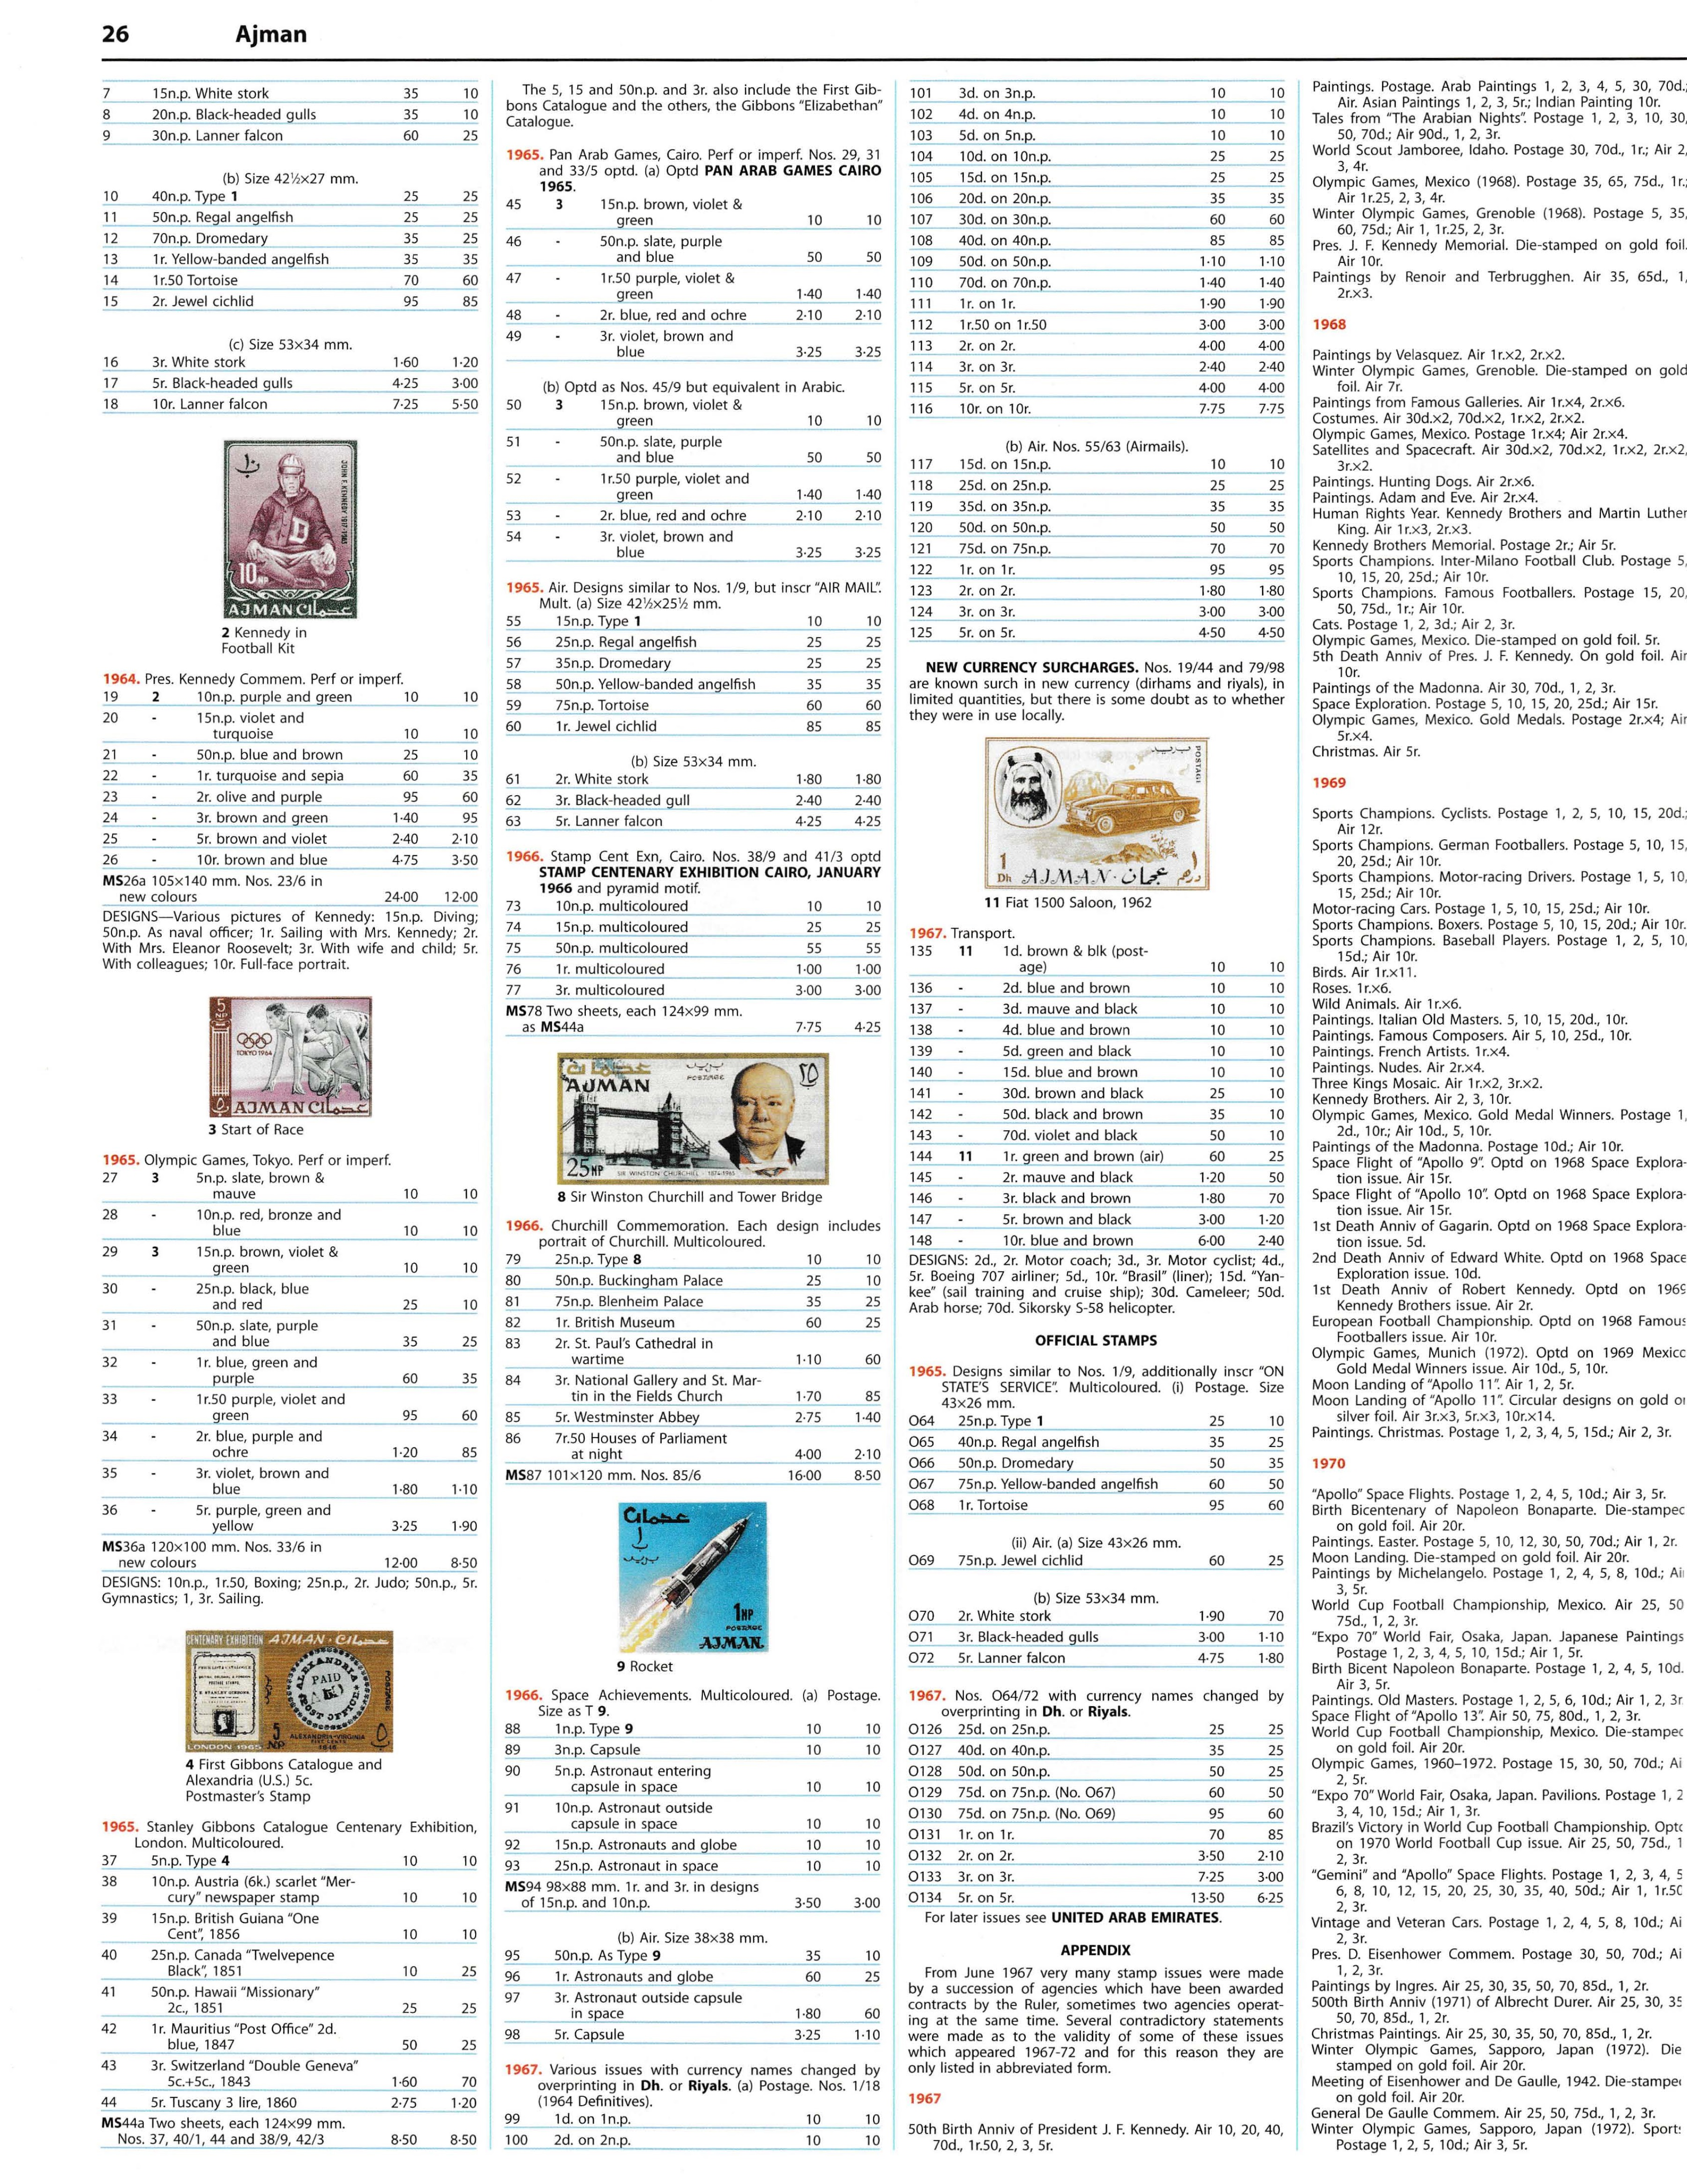 Stanley Gibbons catalogue (2014 edition) listing for Ajman including the 1965 Stanley Gibbons 125th anniversary set.